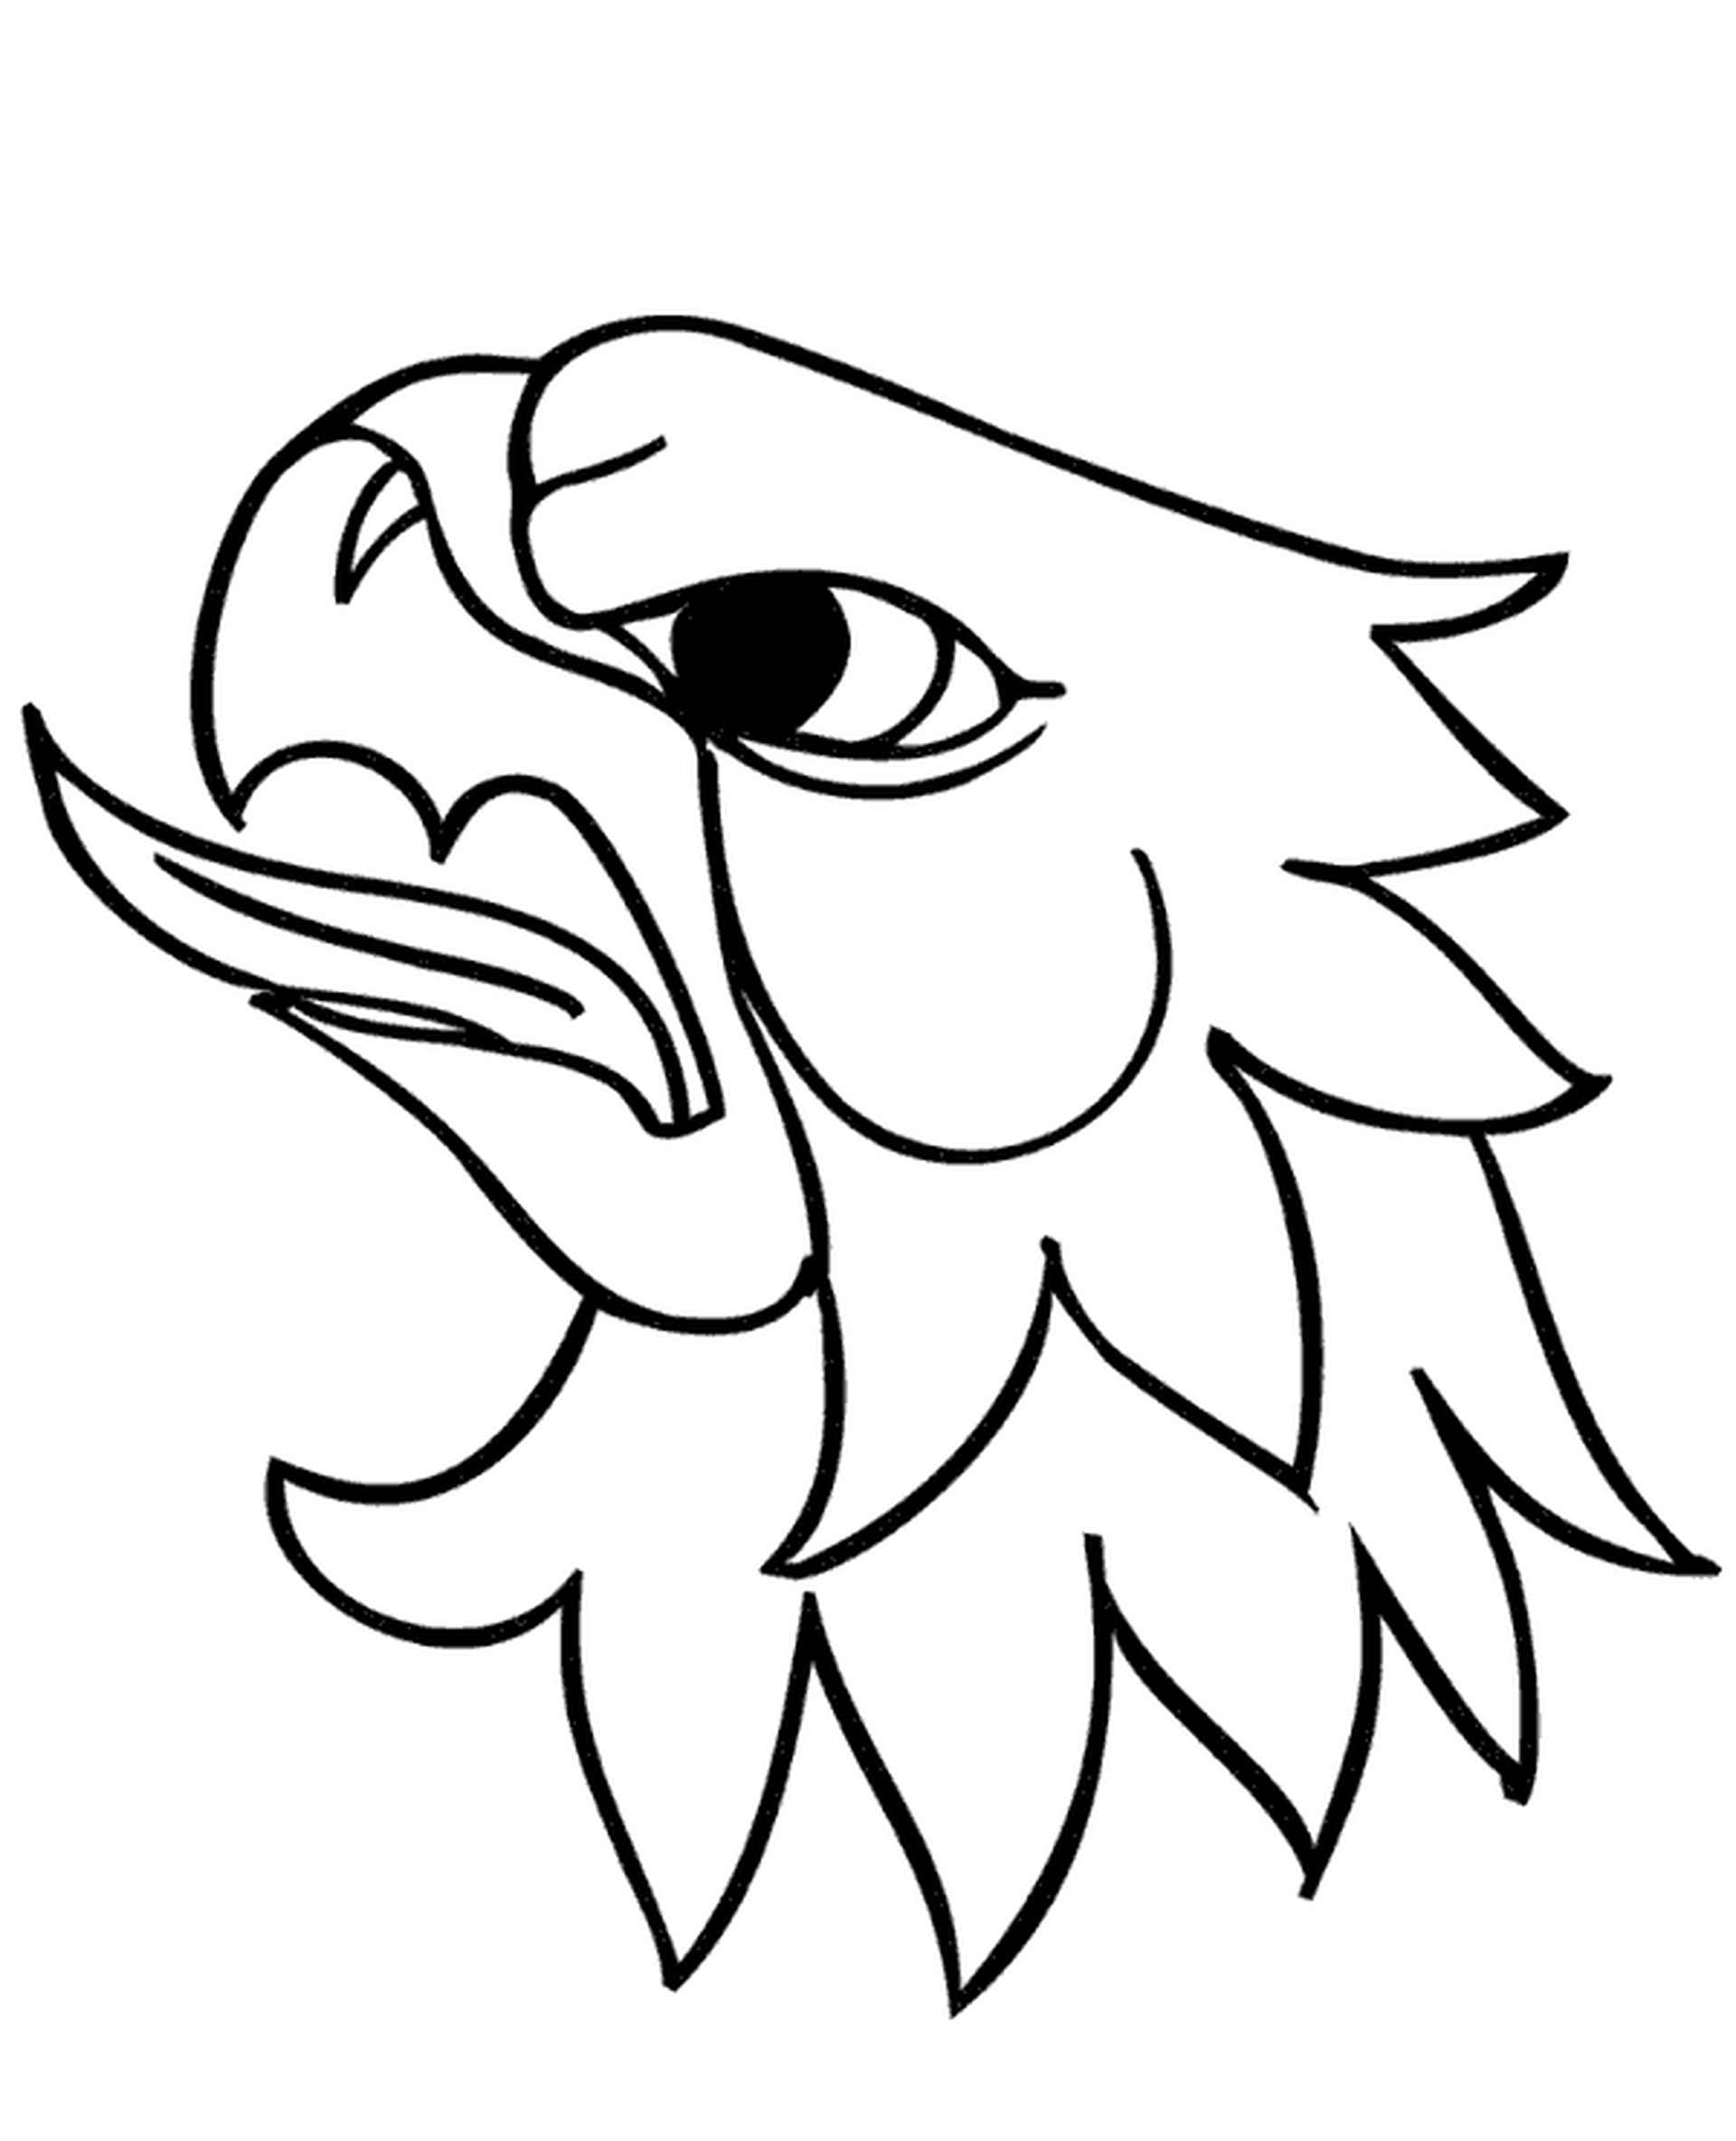 Angry Eagle Head Coloring Page